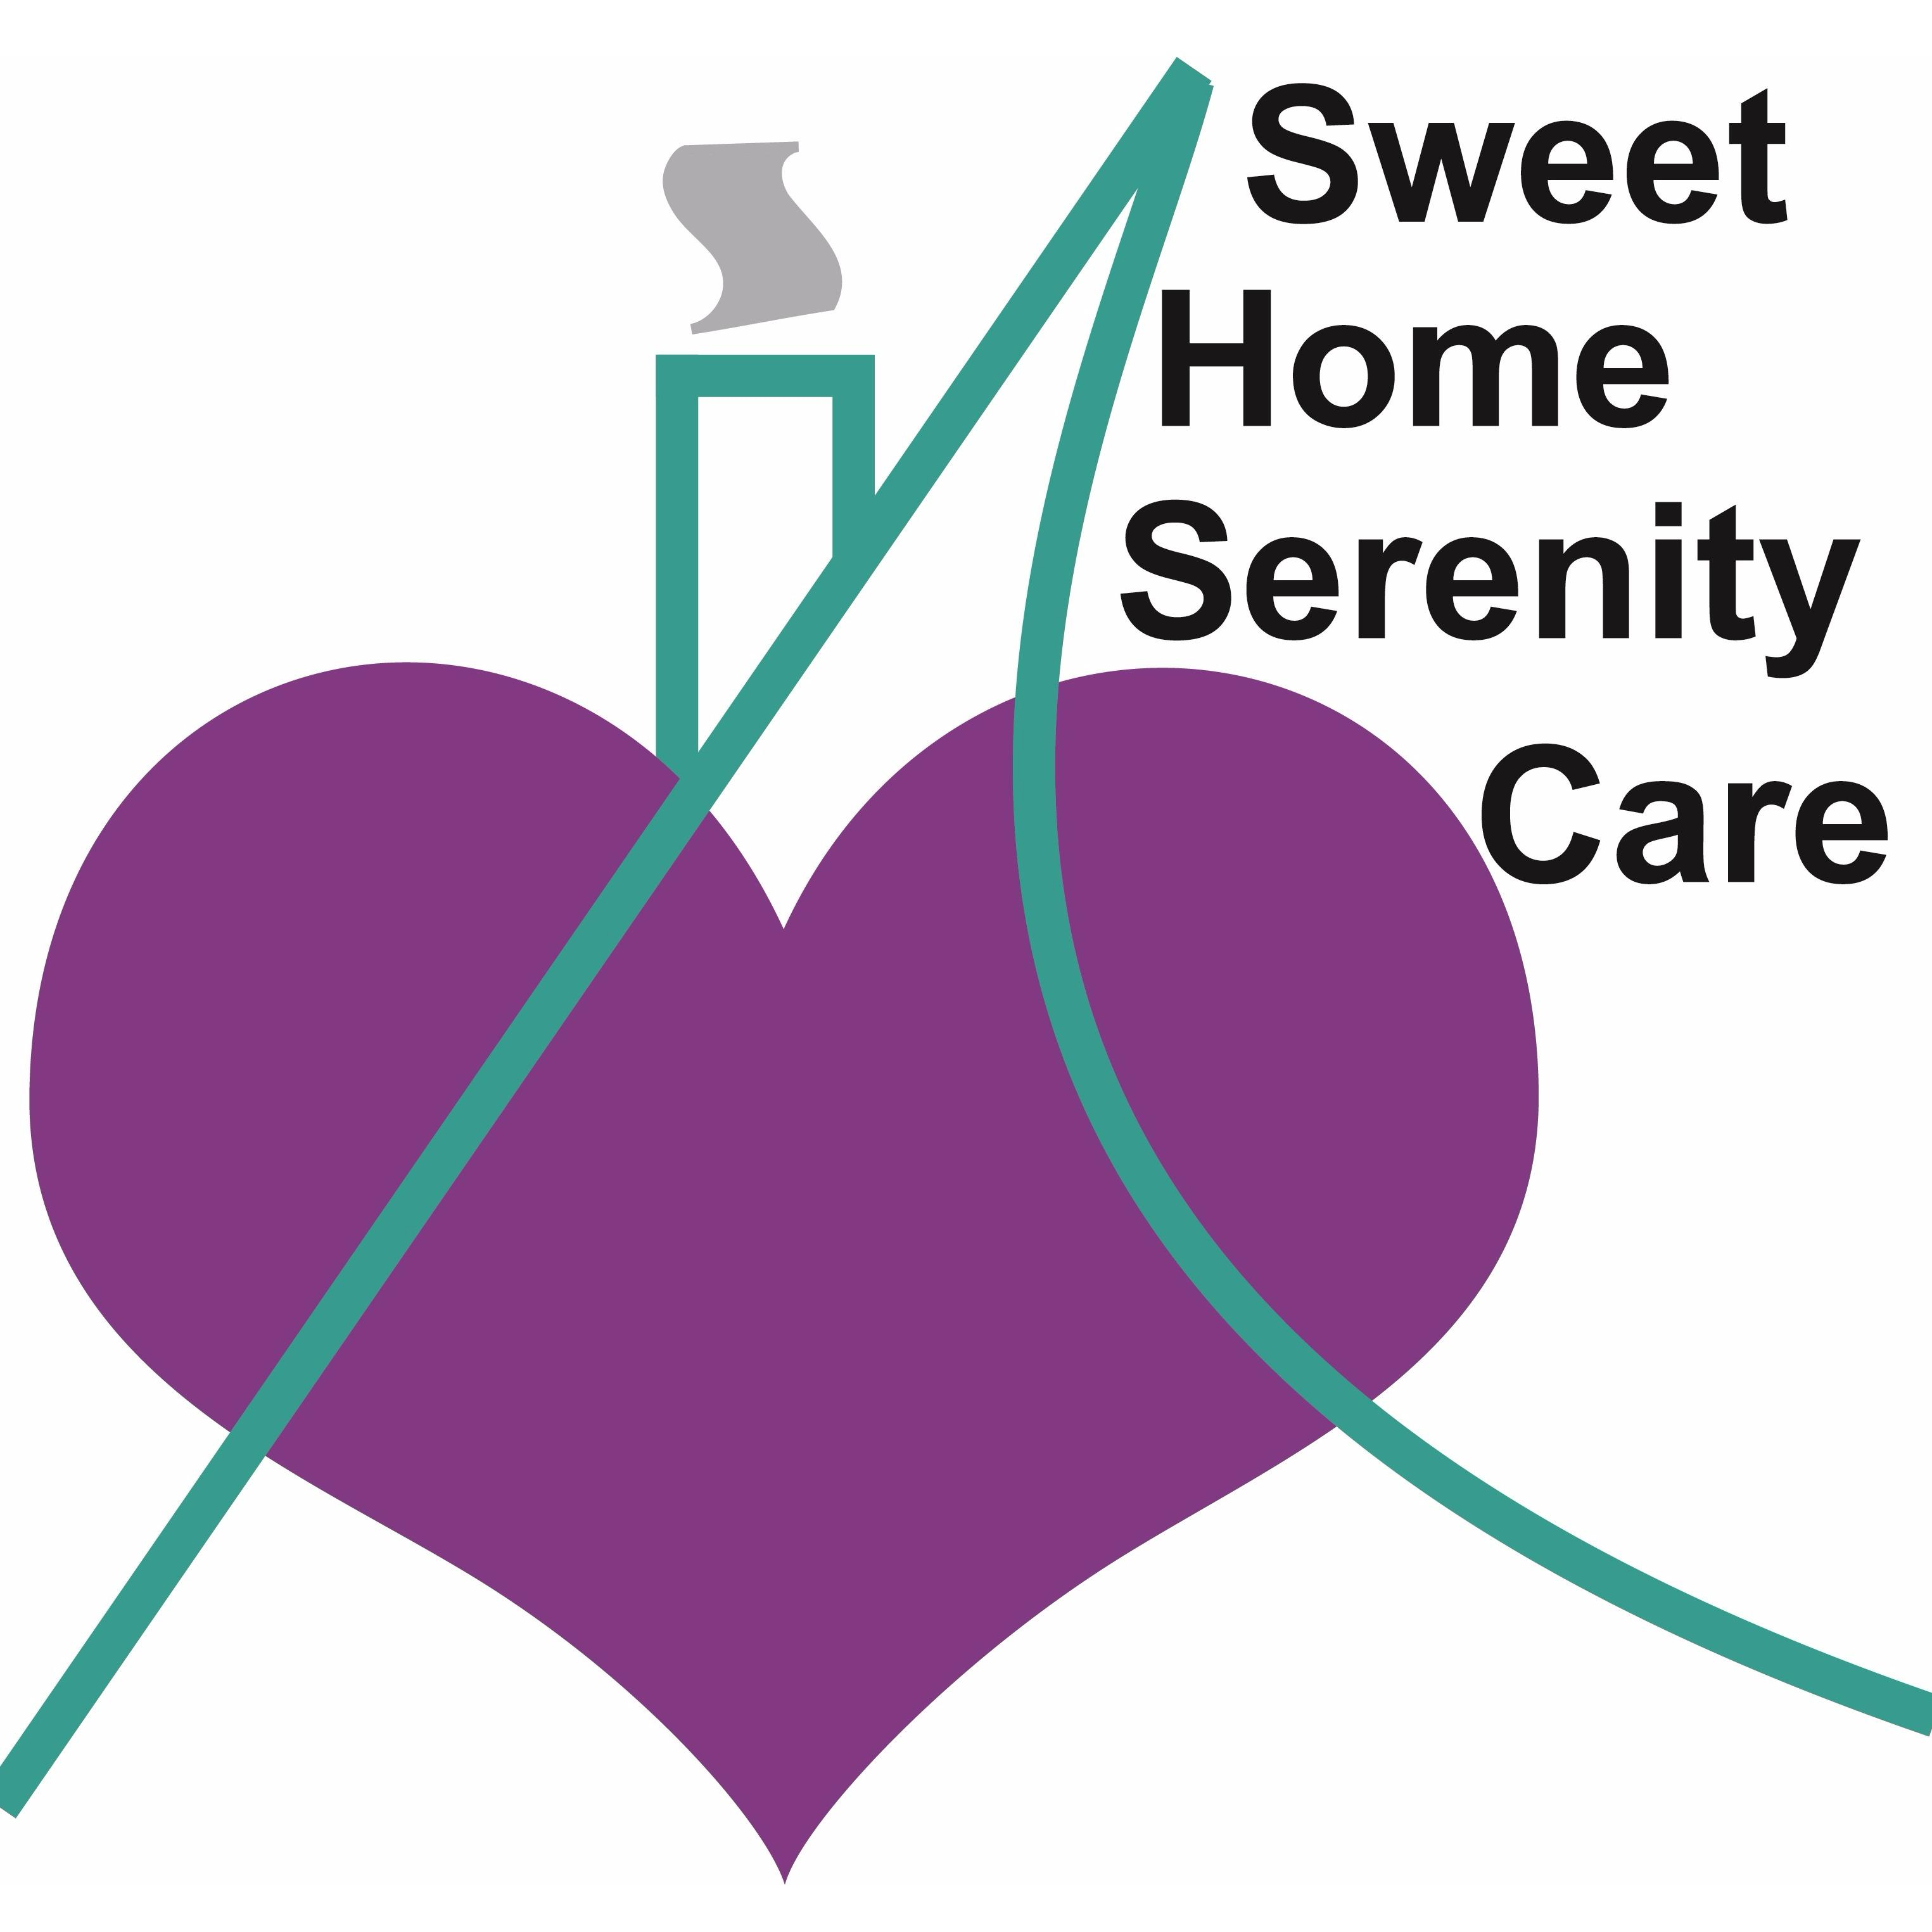 Sweet Home Serenity Care image 4